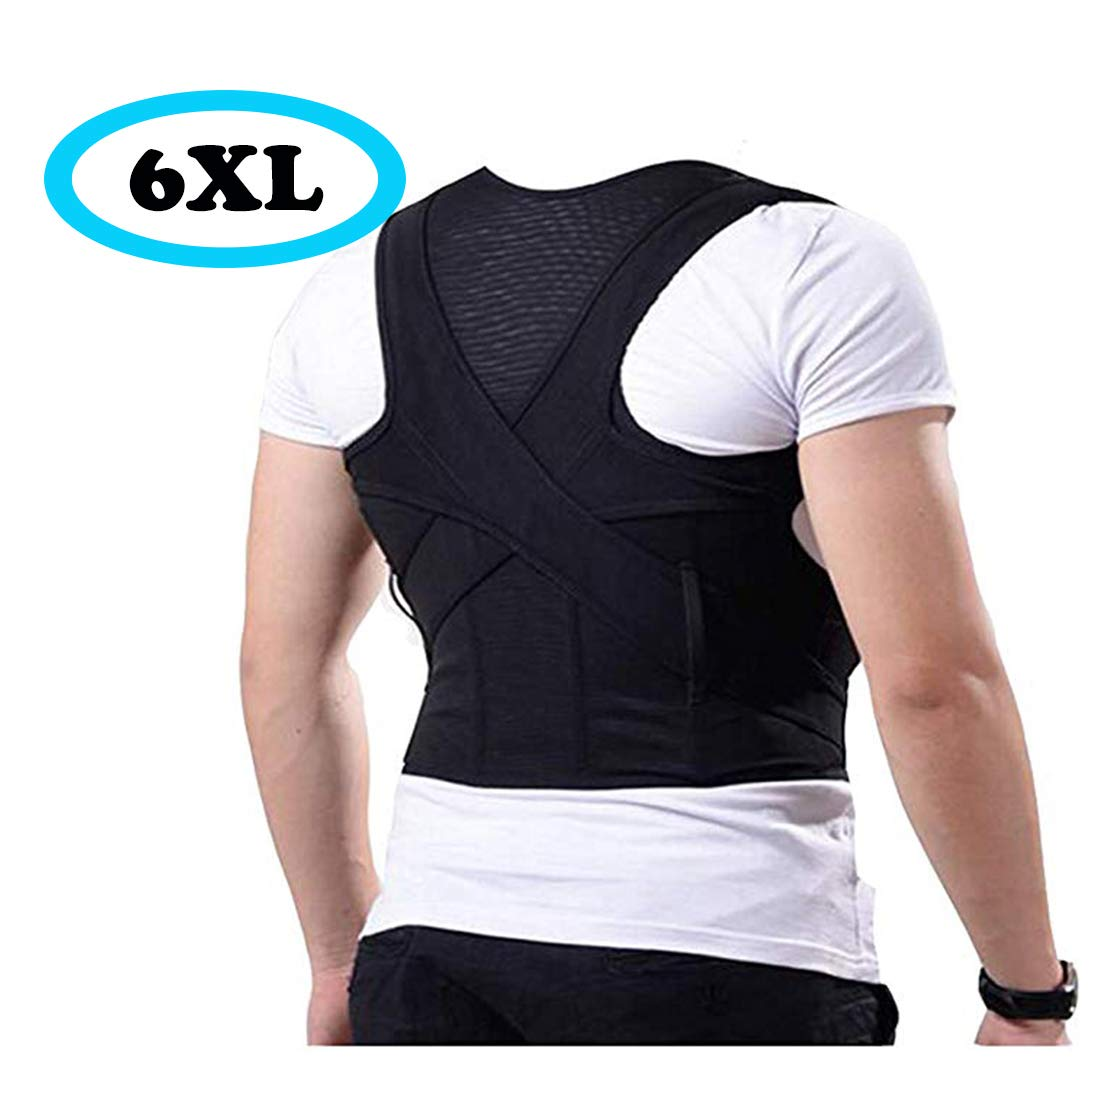 New Improved Size Comfort Back Support,Breathable Back Brace To Relief Pain From Back, Neck And Shoulder! (6XL)